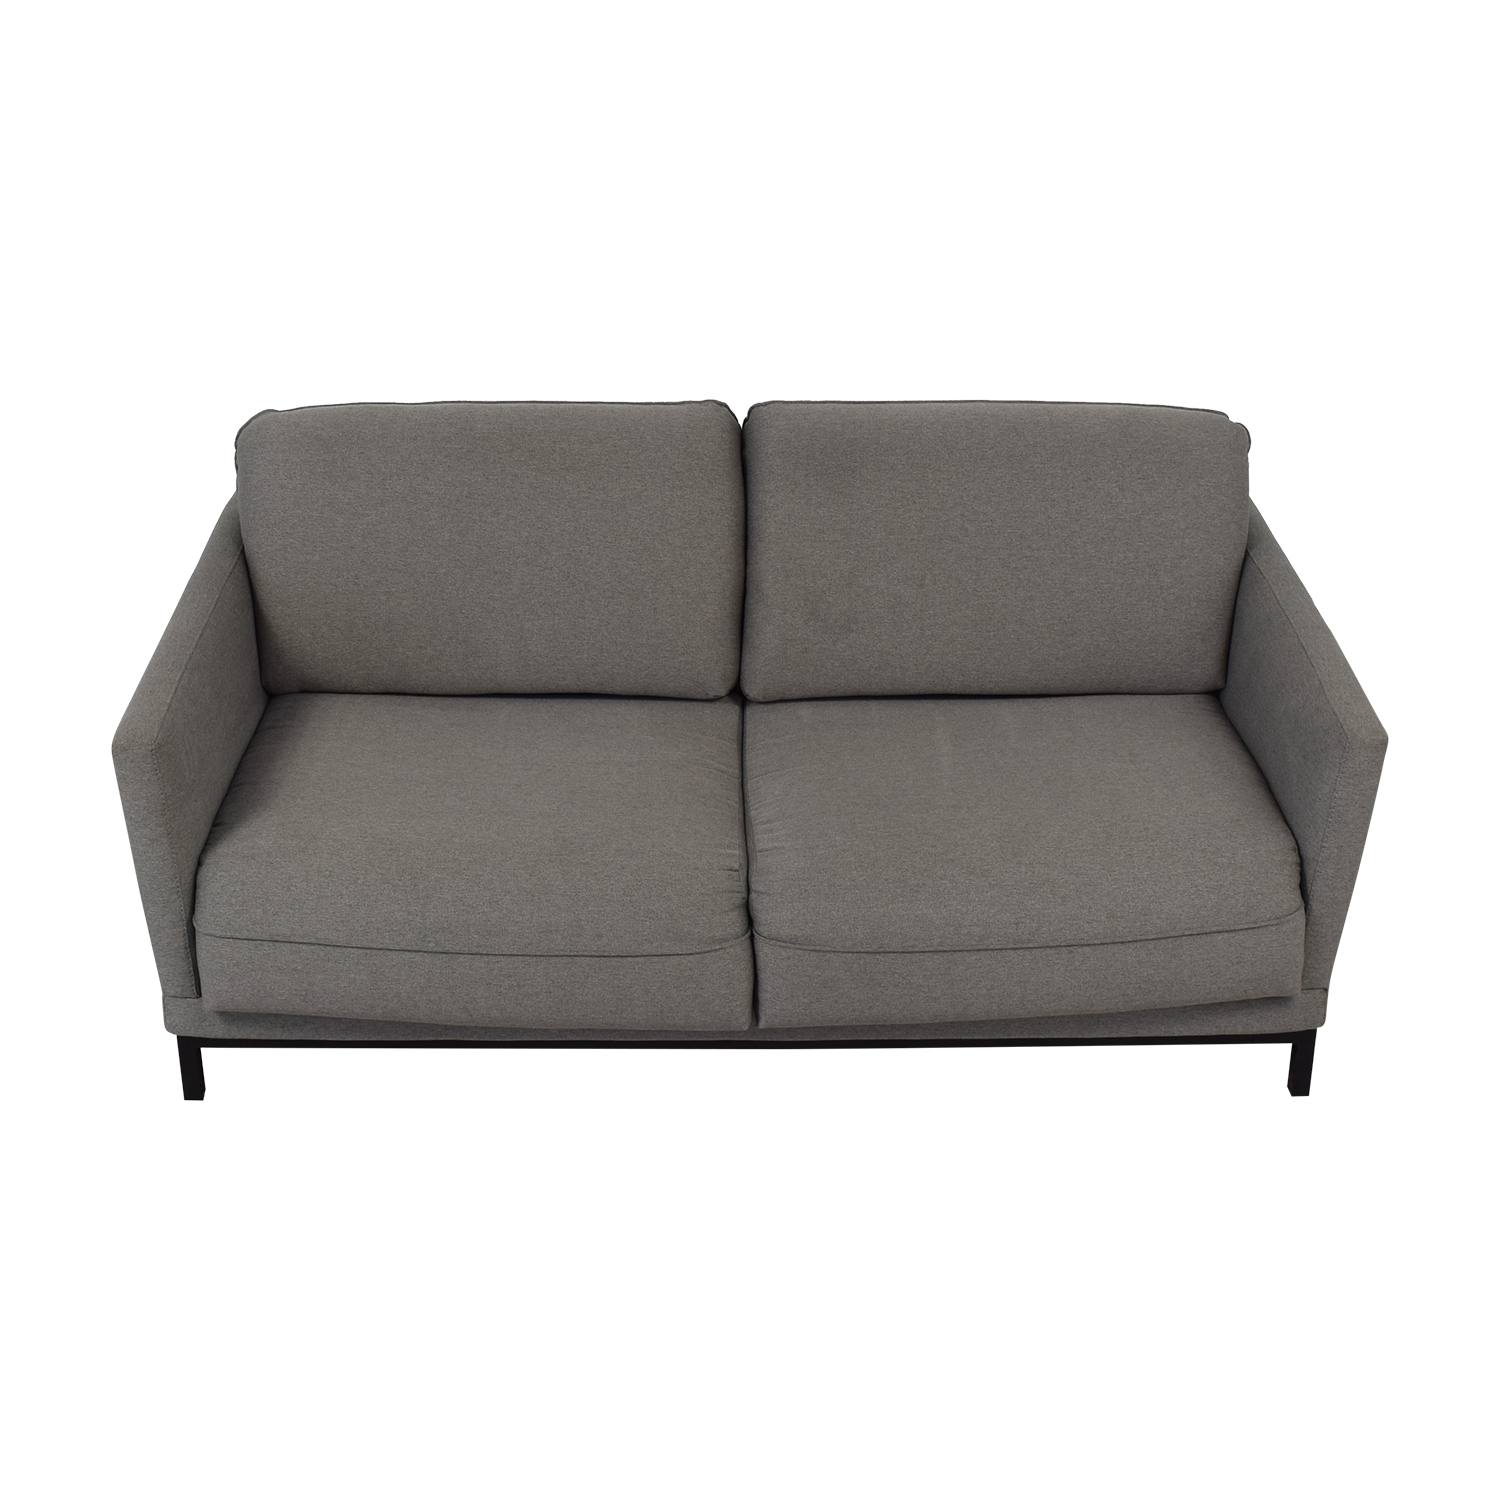 Cool 80 Off Habitat Habitat Bach Ii Sofa Sofas Caraccident5 Cool Chair Designs And Ideas Caraccident5Info